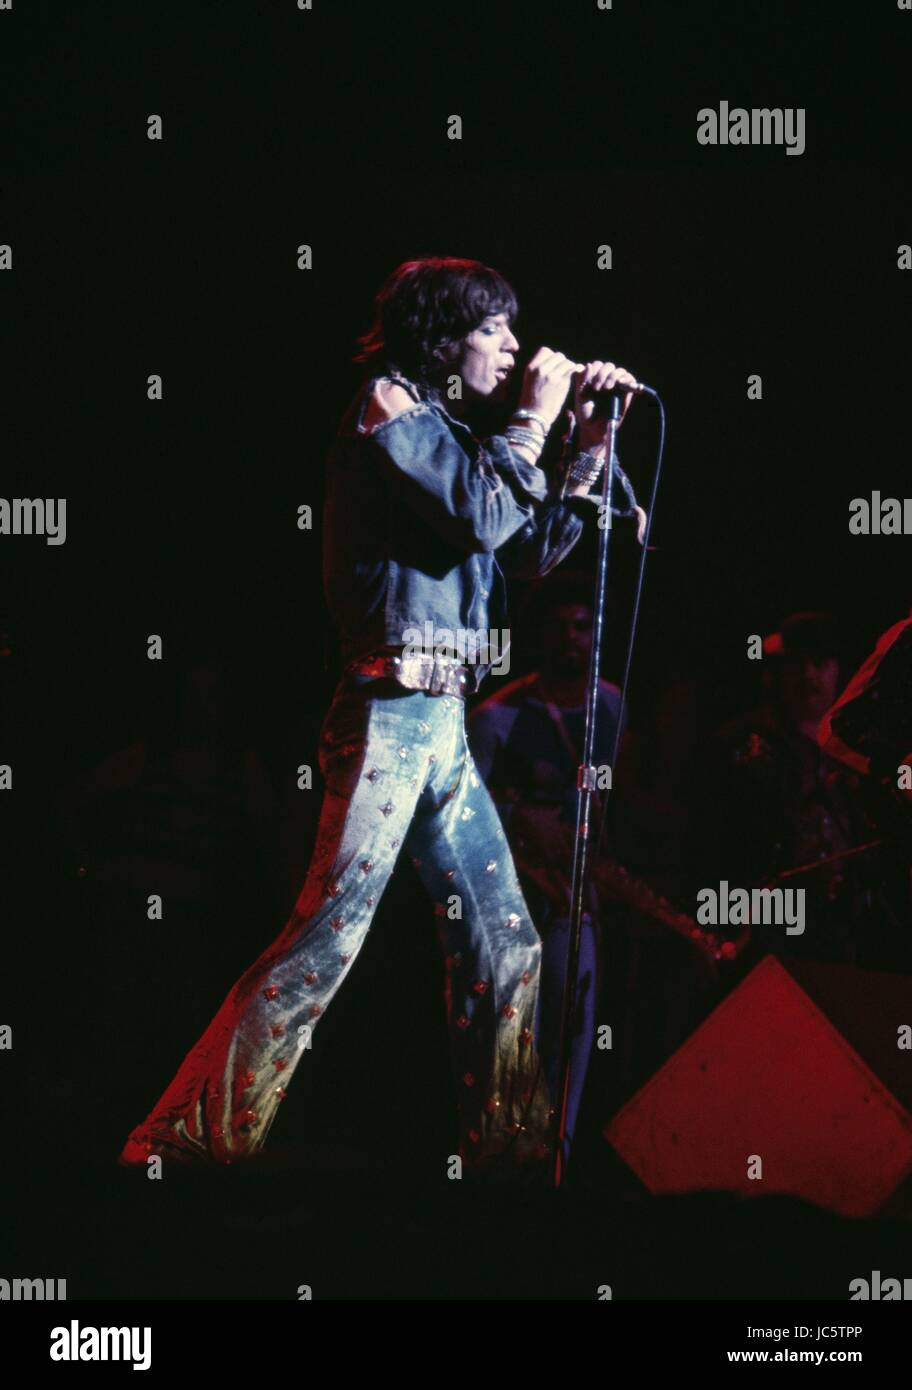 mick jagger during a concert from the rolling stones american tour stock photo 145188030 alamy. Black Bedroom Furniture Sets. Home Design Ideas